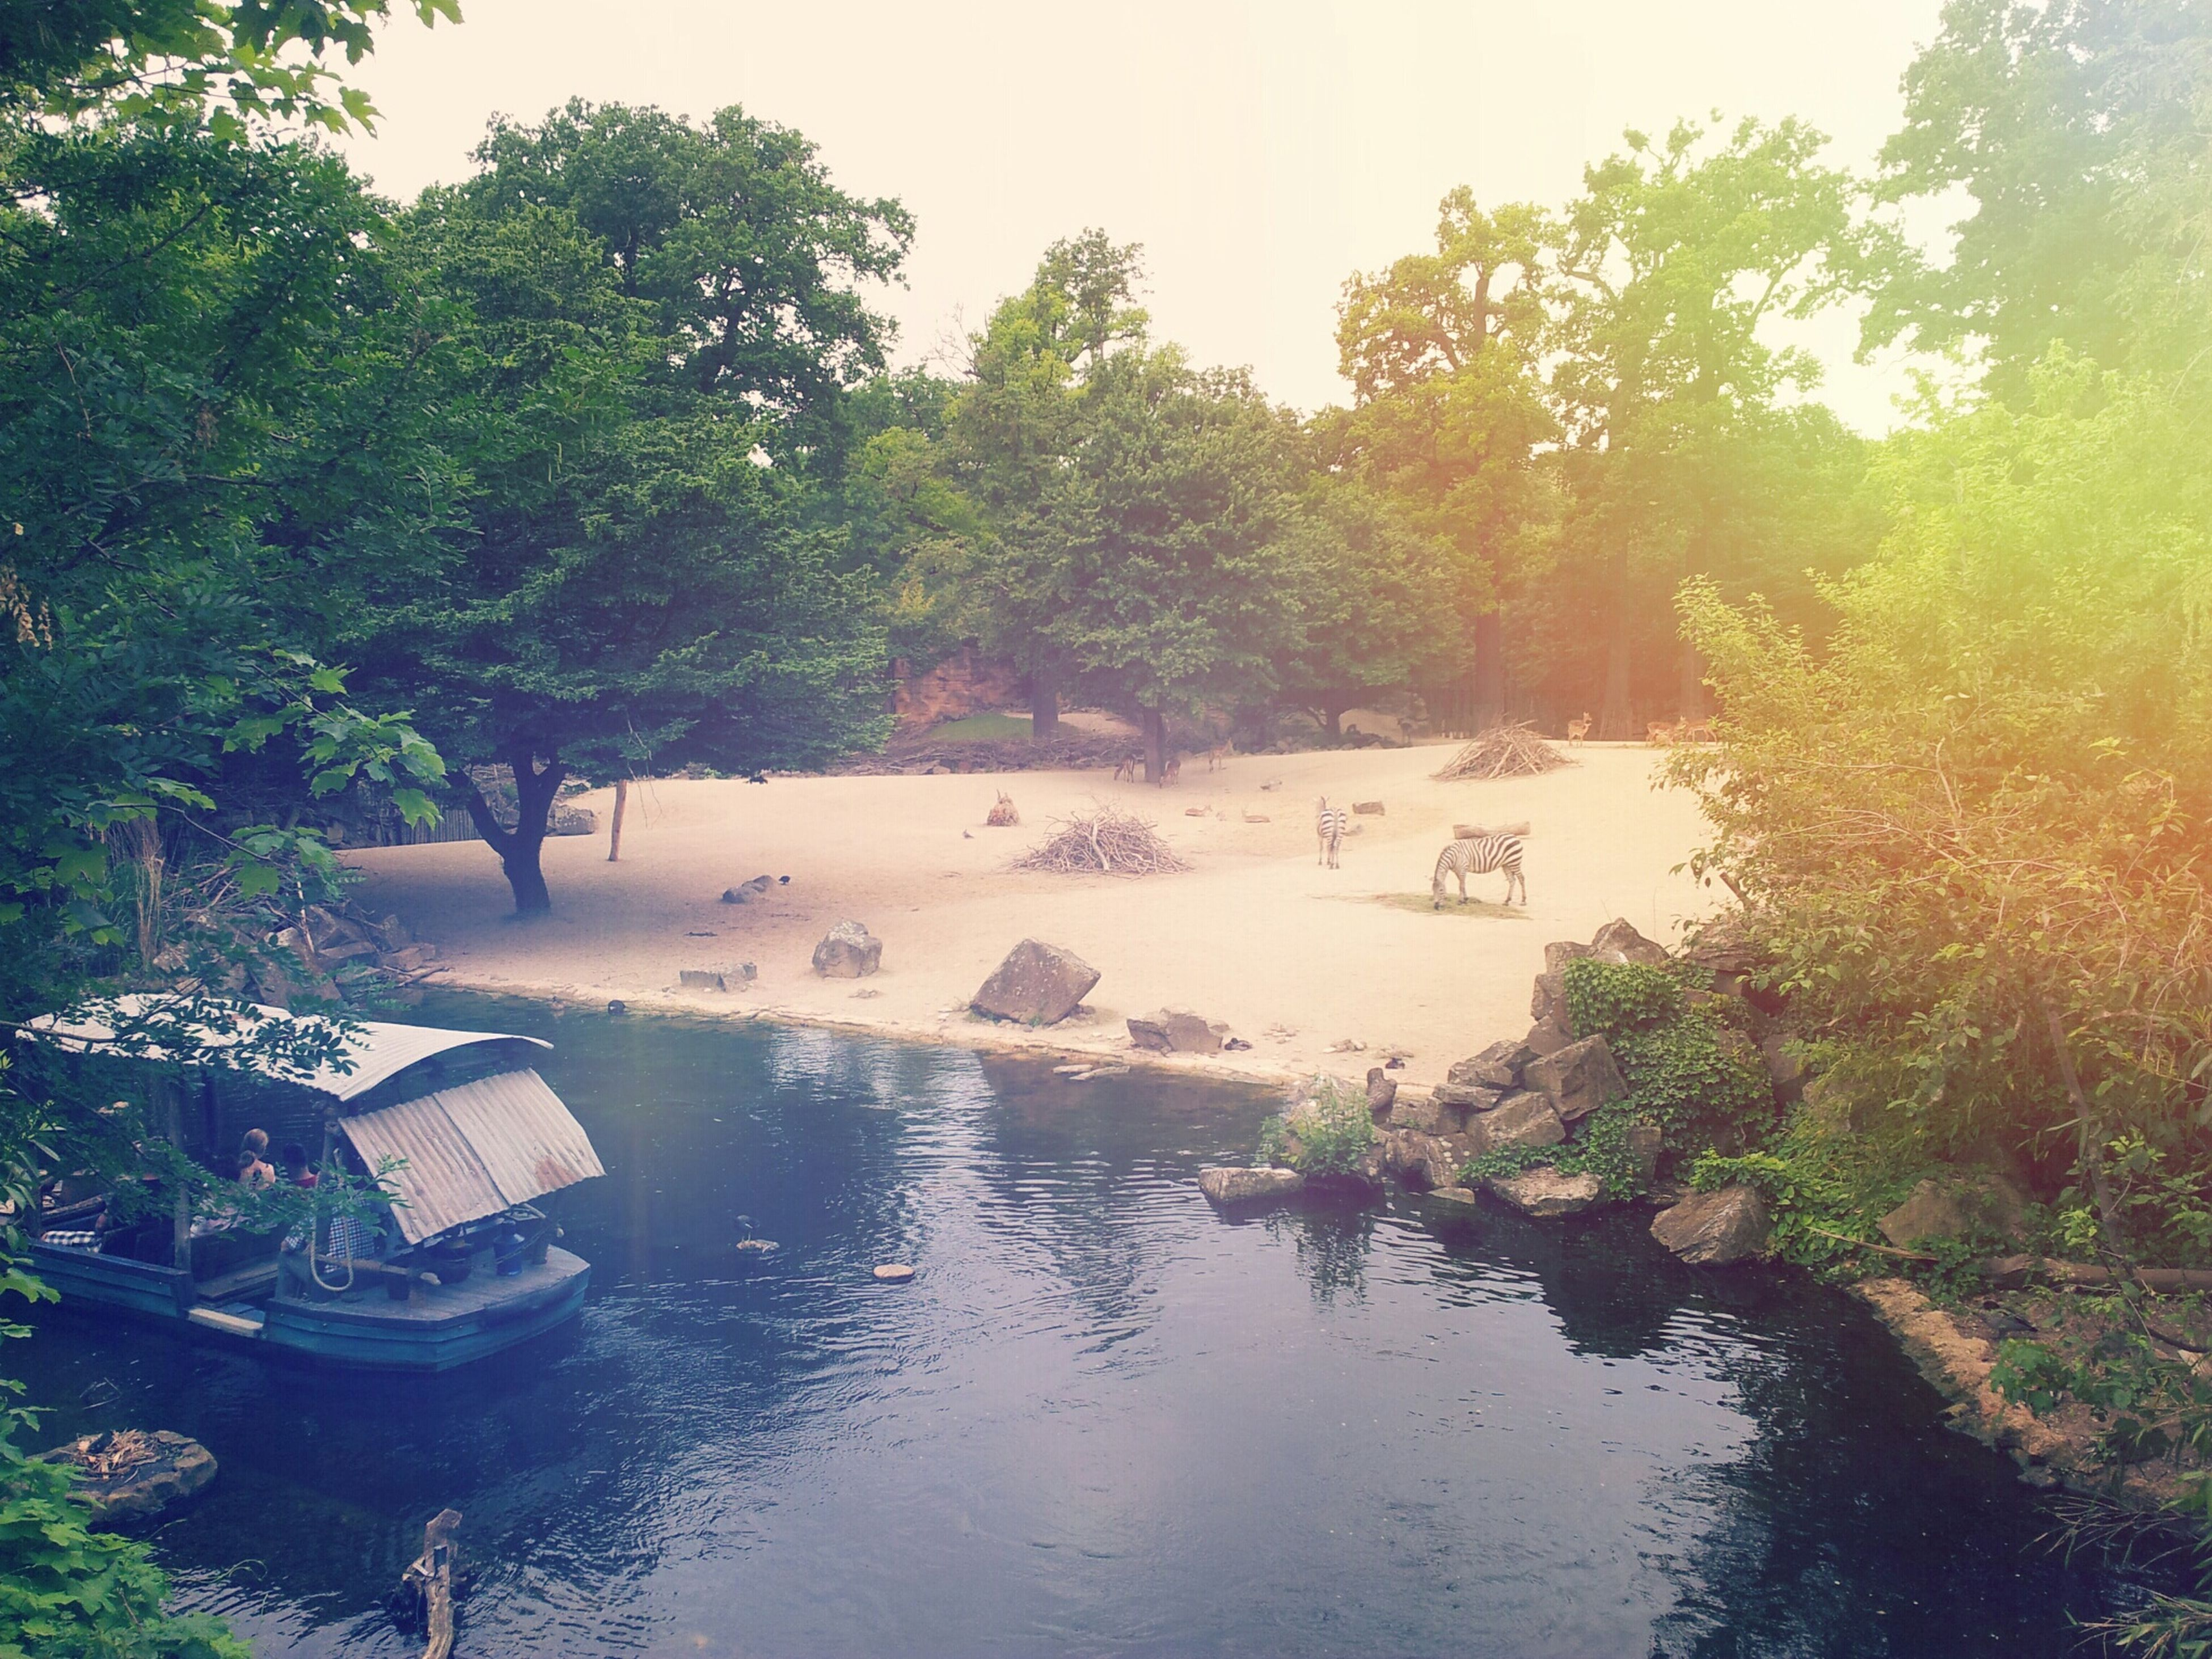 tree, water, tranquility, nature, tranquil scene, nautical vessel, scenics, growth, beauty in nature, boat, waterfront, reflection, river, moored, day, forest, lake, idyllic, outdoors, green color